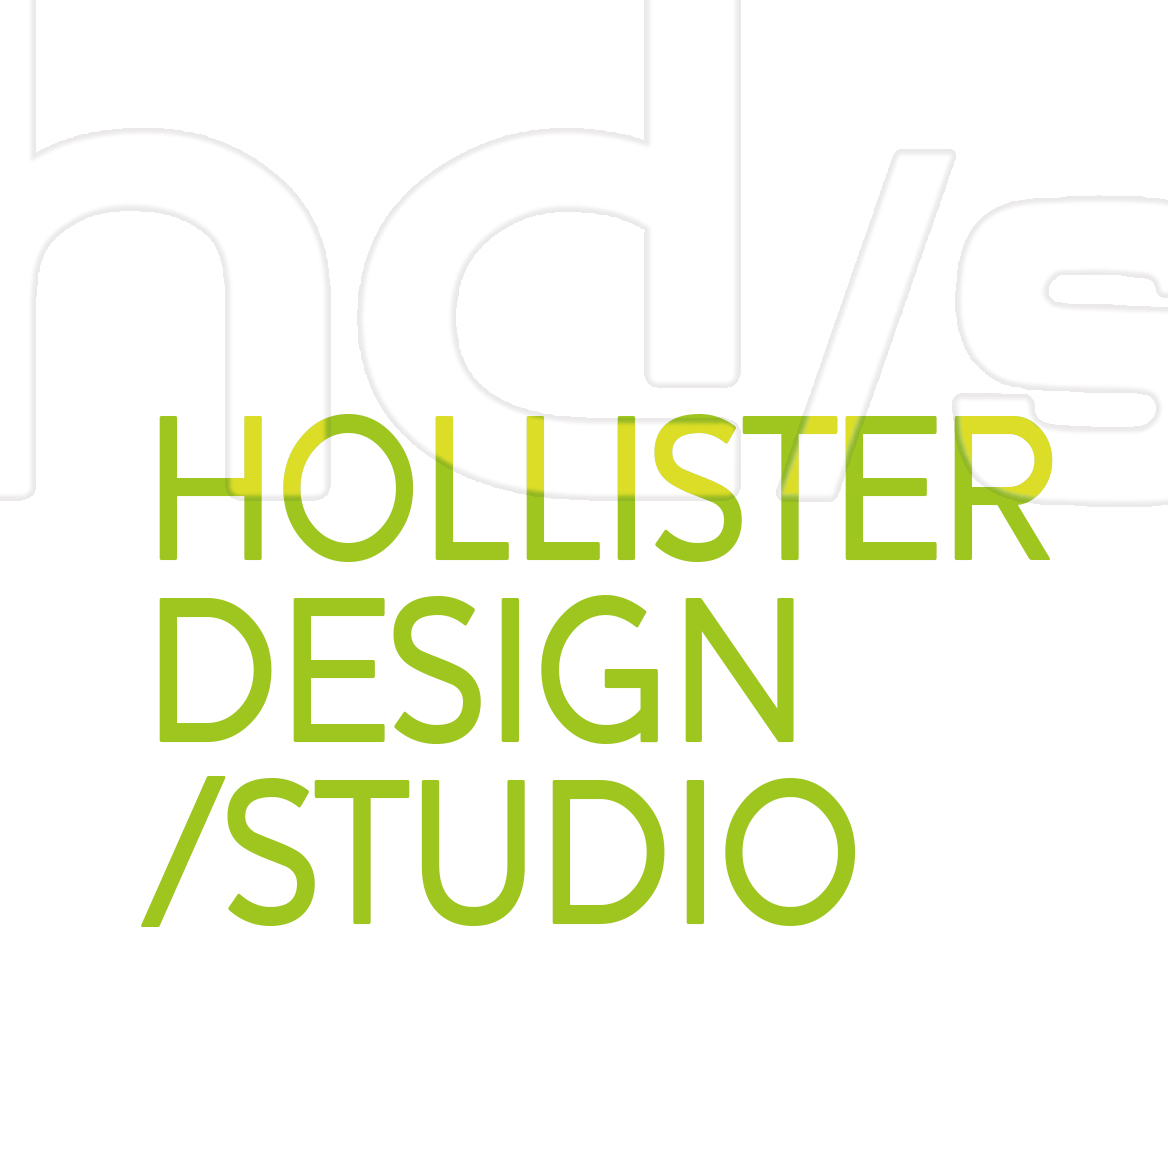 Hollister design studio Hollister design